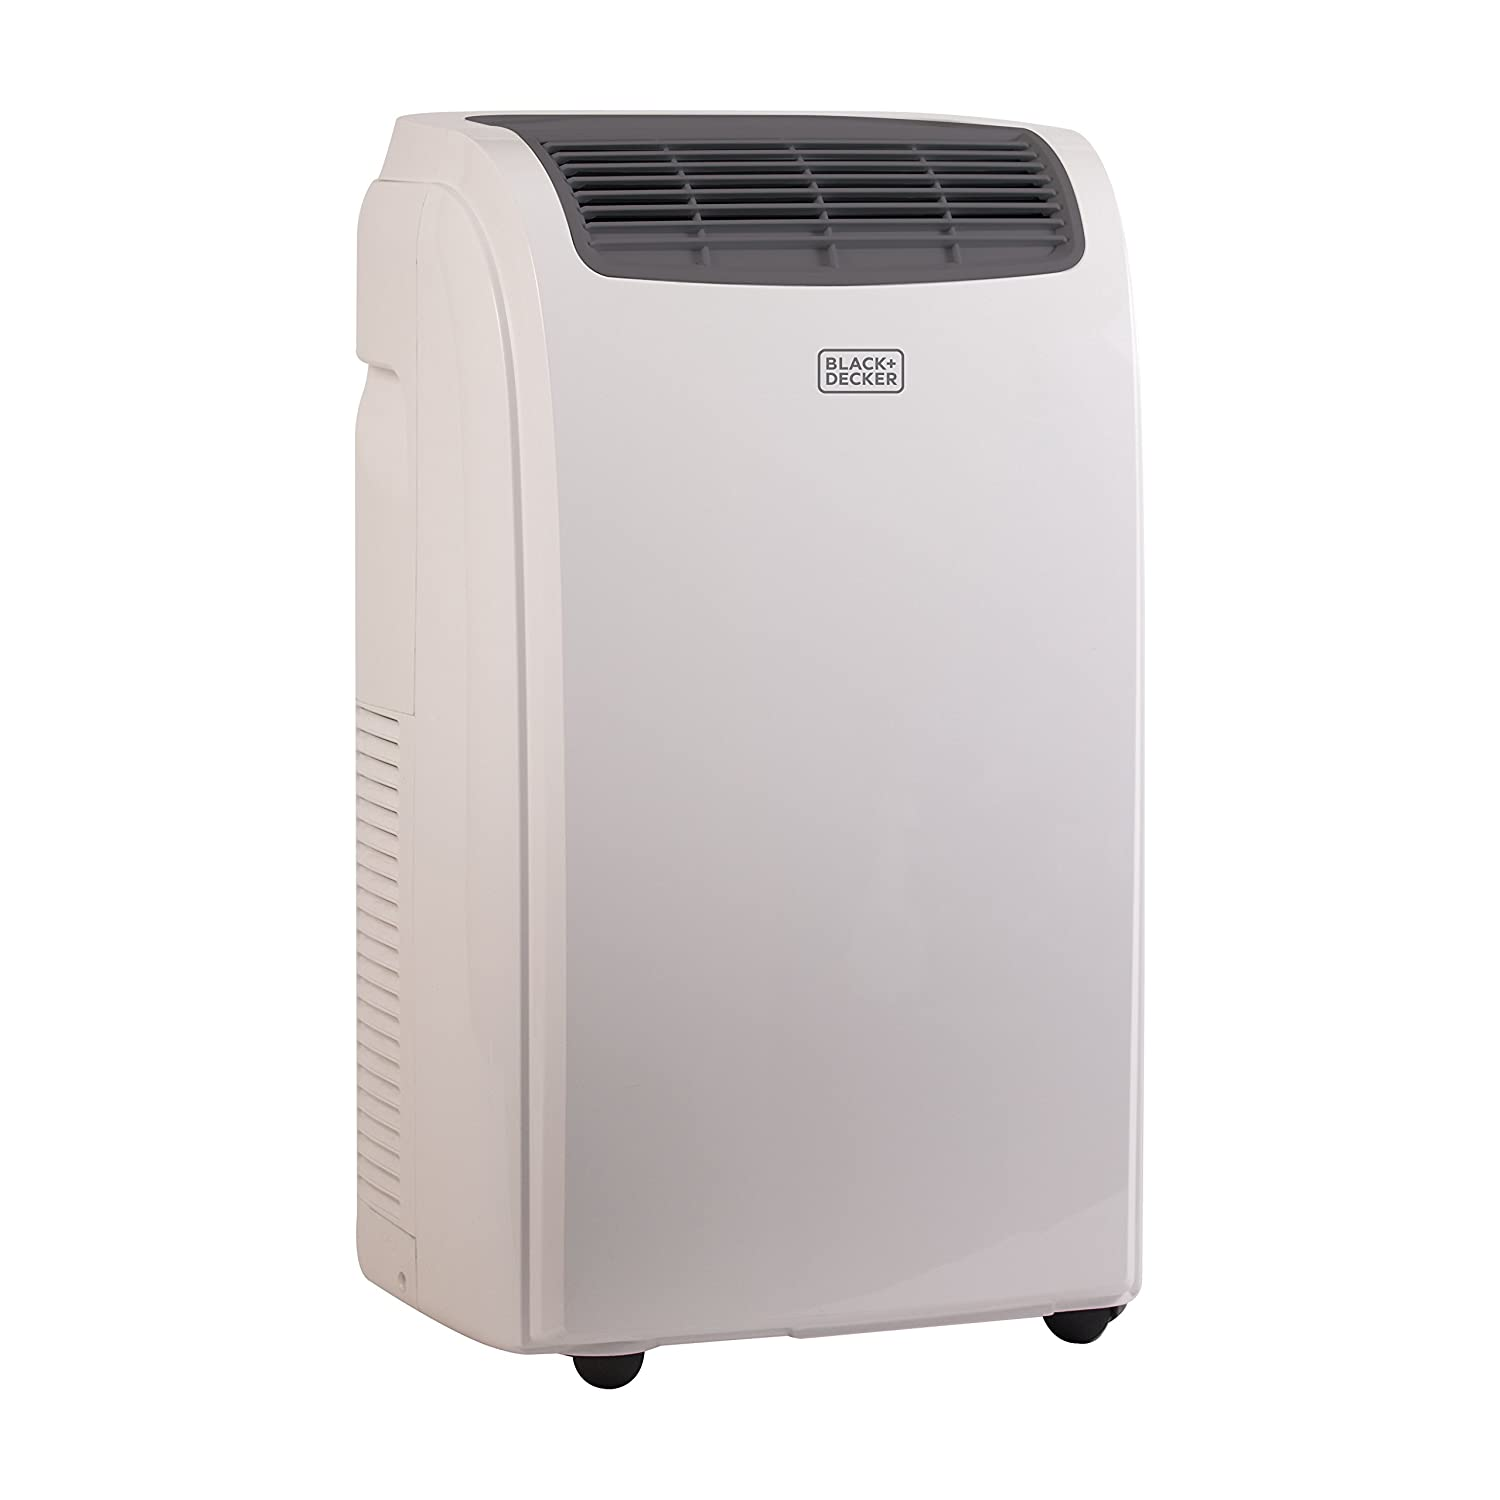 Black + Decker 8000 BTU Portable Air Conditioner Unit, Remote, LED Display, Window Vent Kit, 4 Caster Wheels, White